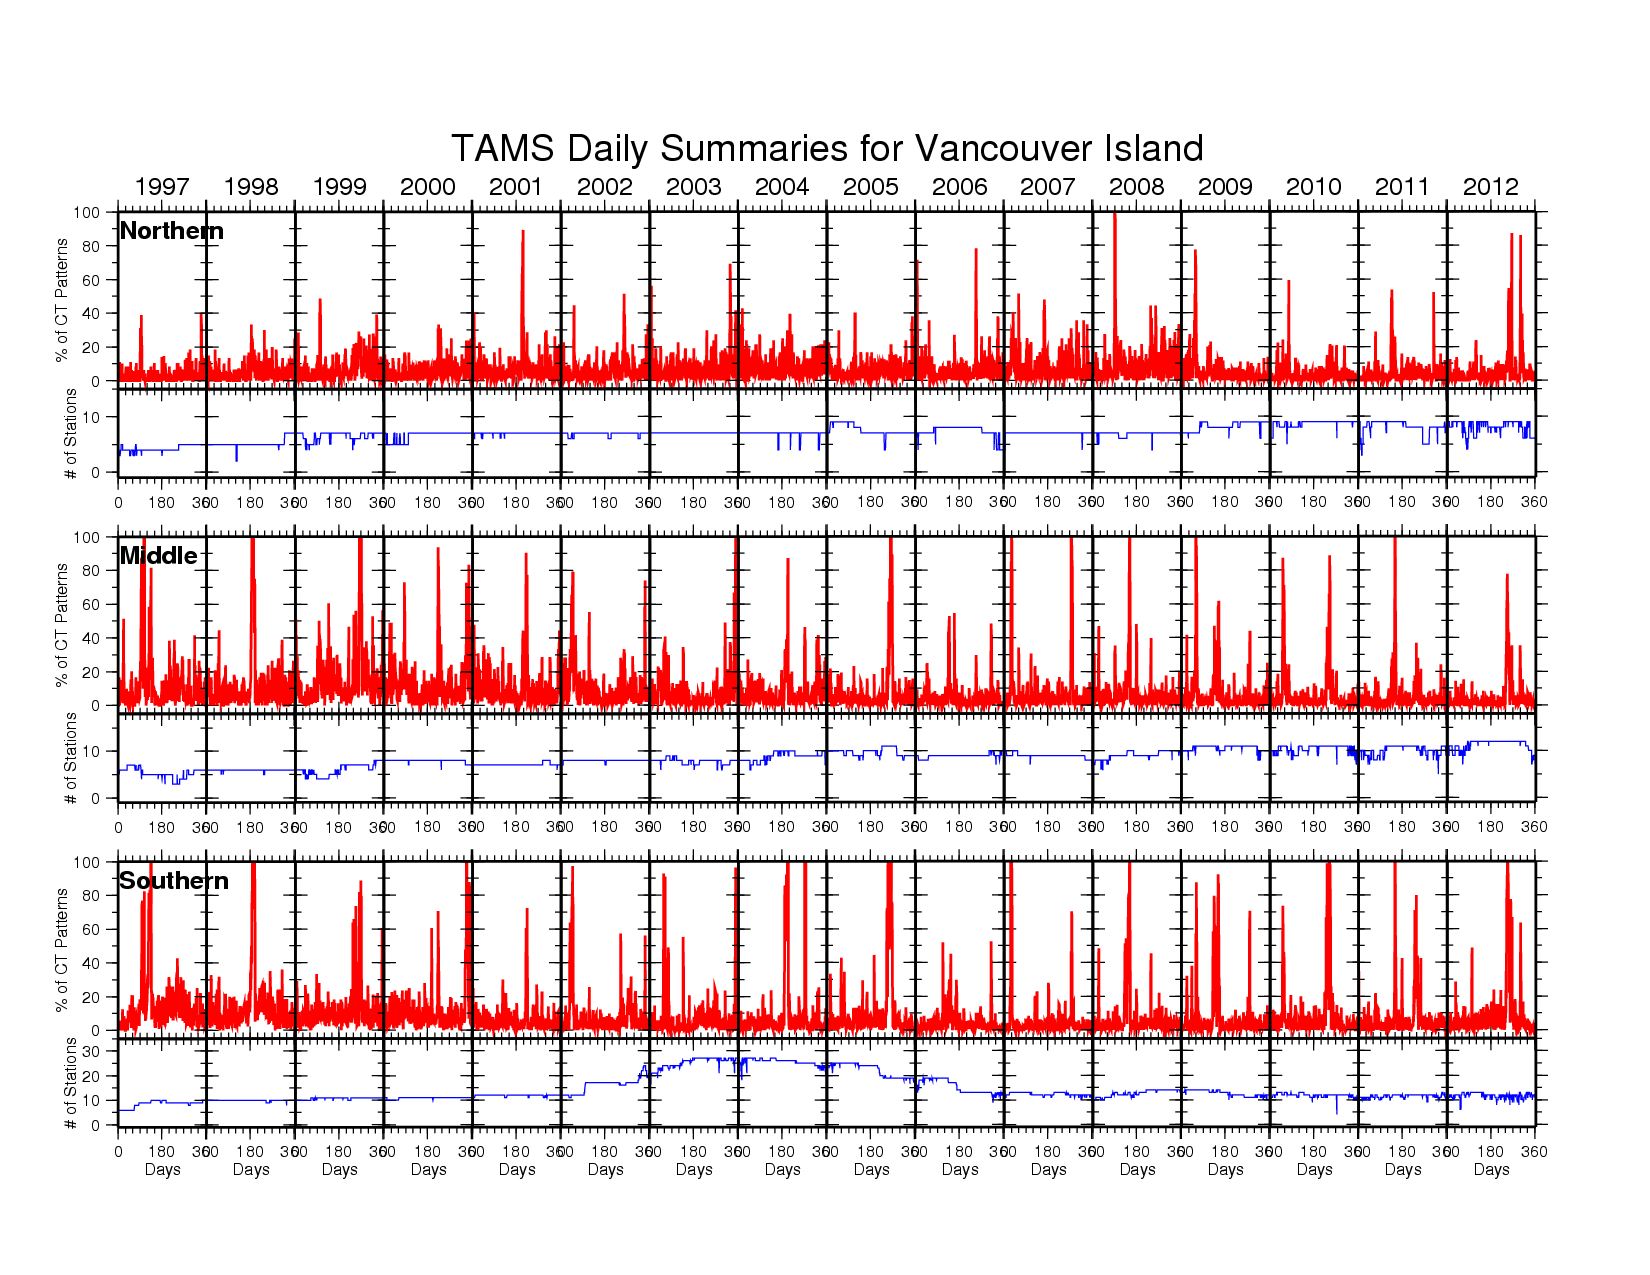 Graph of TAMS Activities from year 1997 and 2012 in Northern, Middle and Southern Vancouver Island. Full description and tables of data found below.